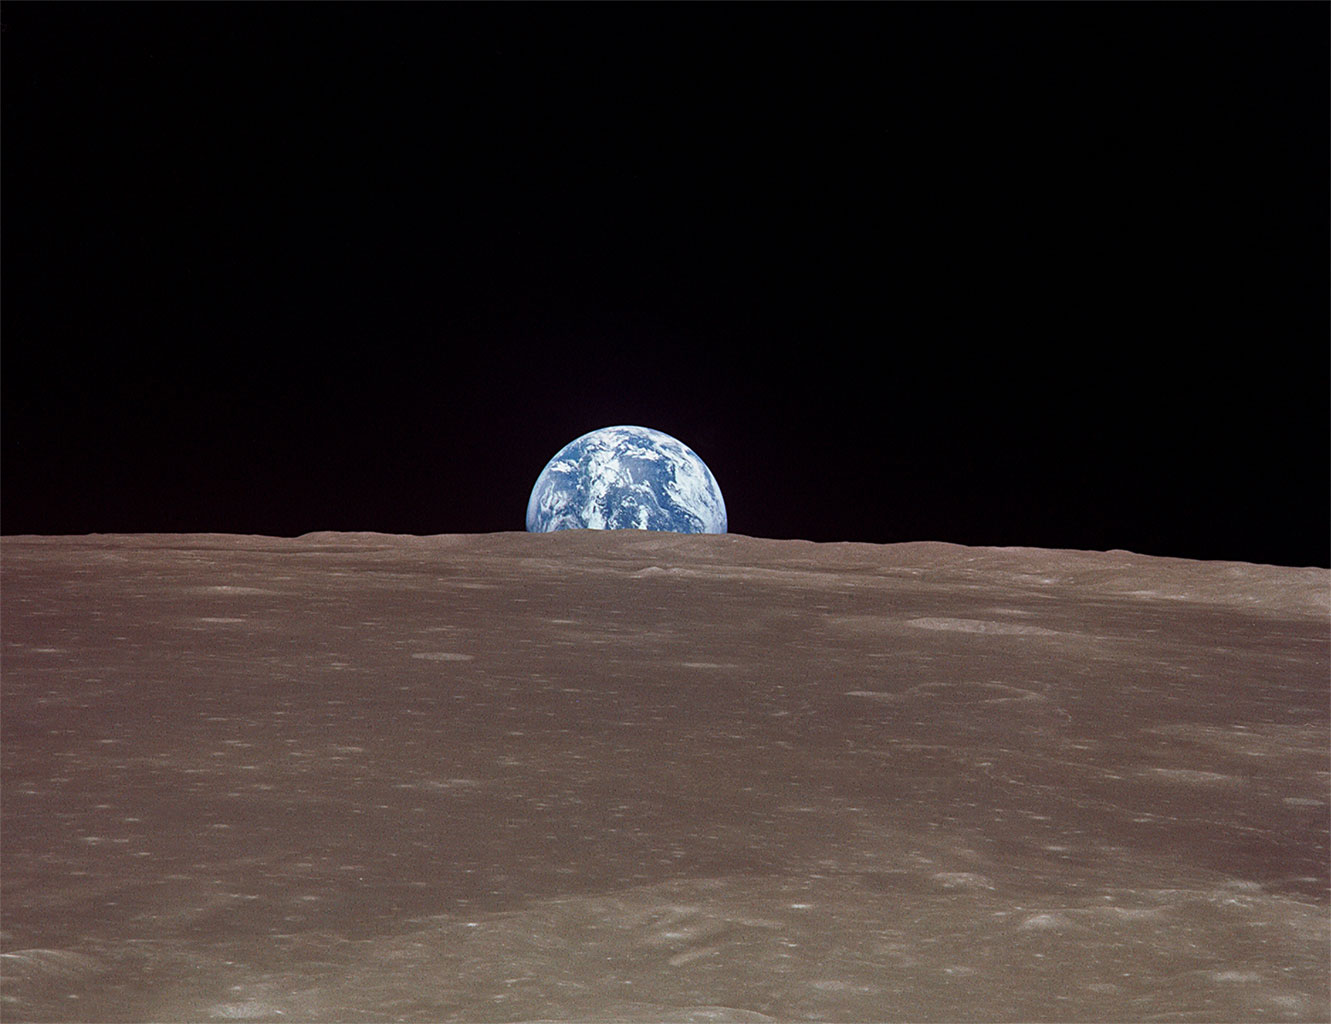 earthrise from moon apollo - photo #36